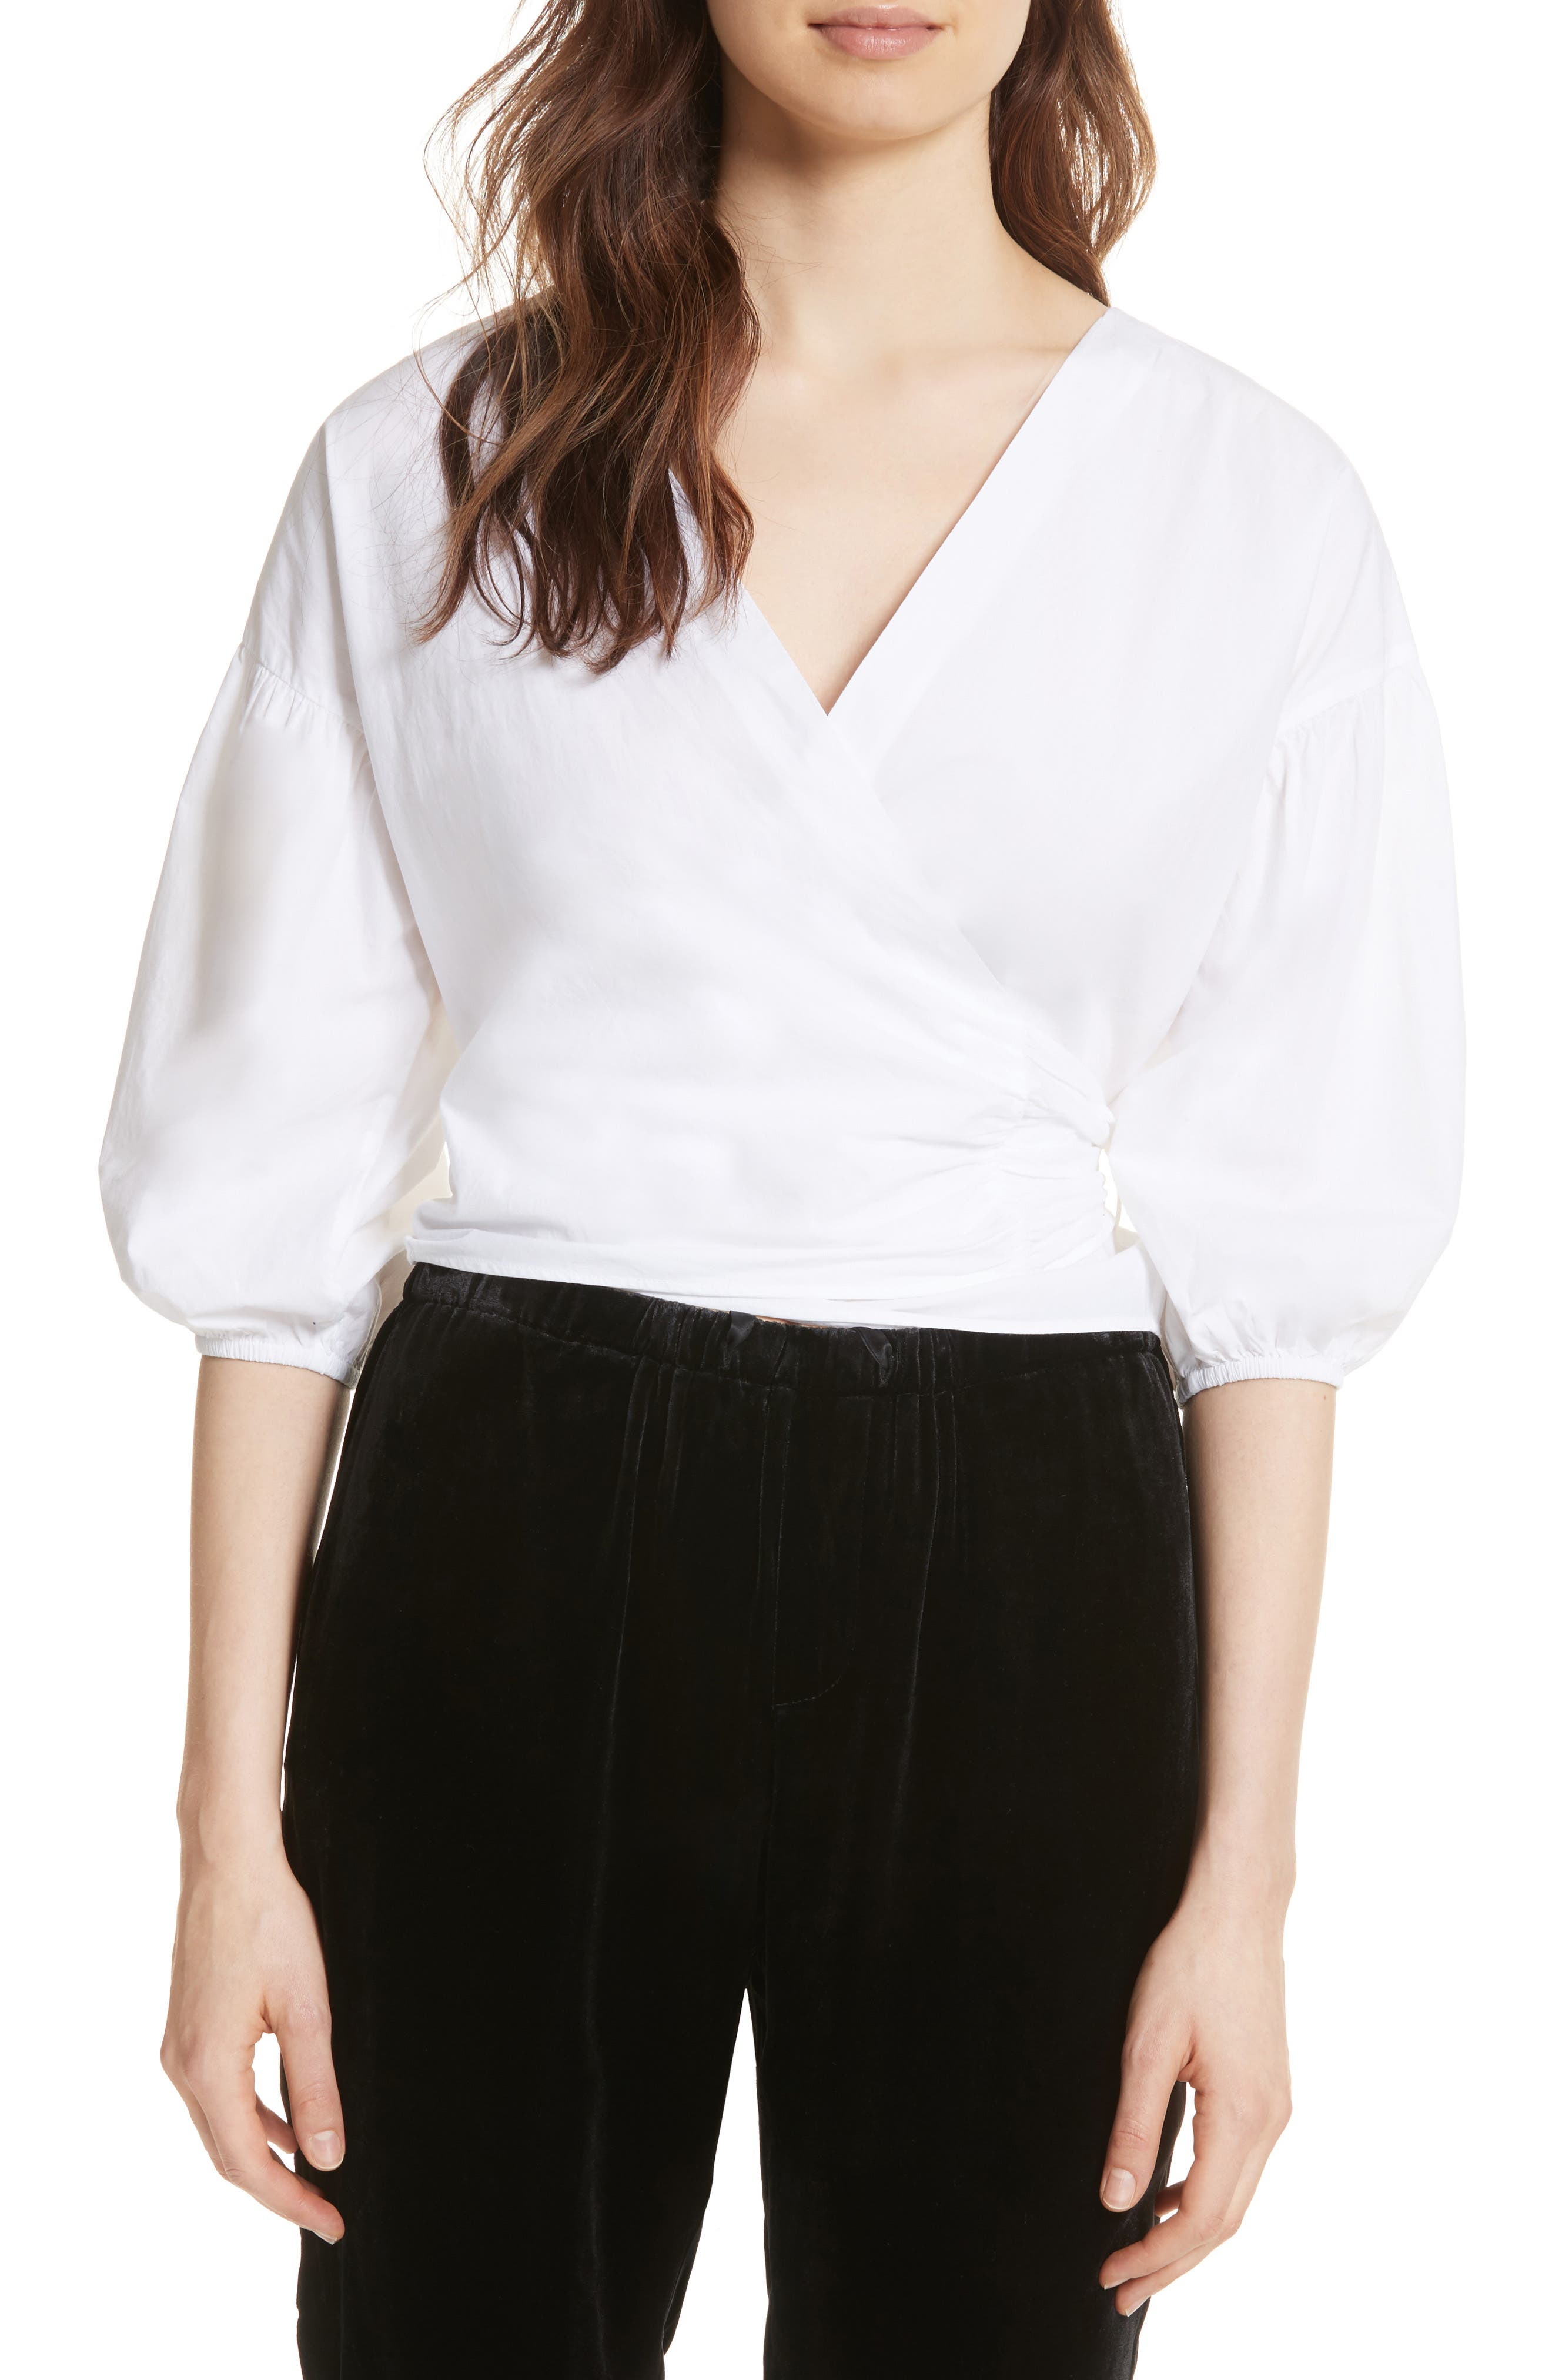 Hausu Bow Back Blouse,                         Main,                         color, Clean White